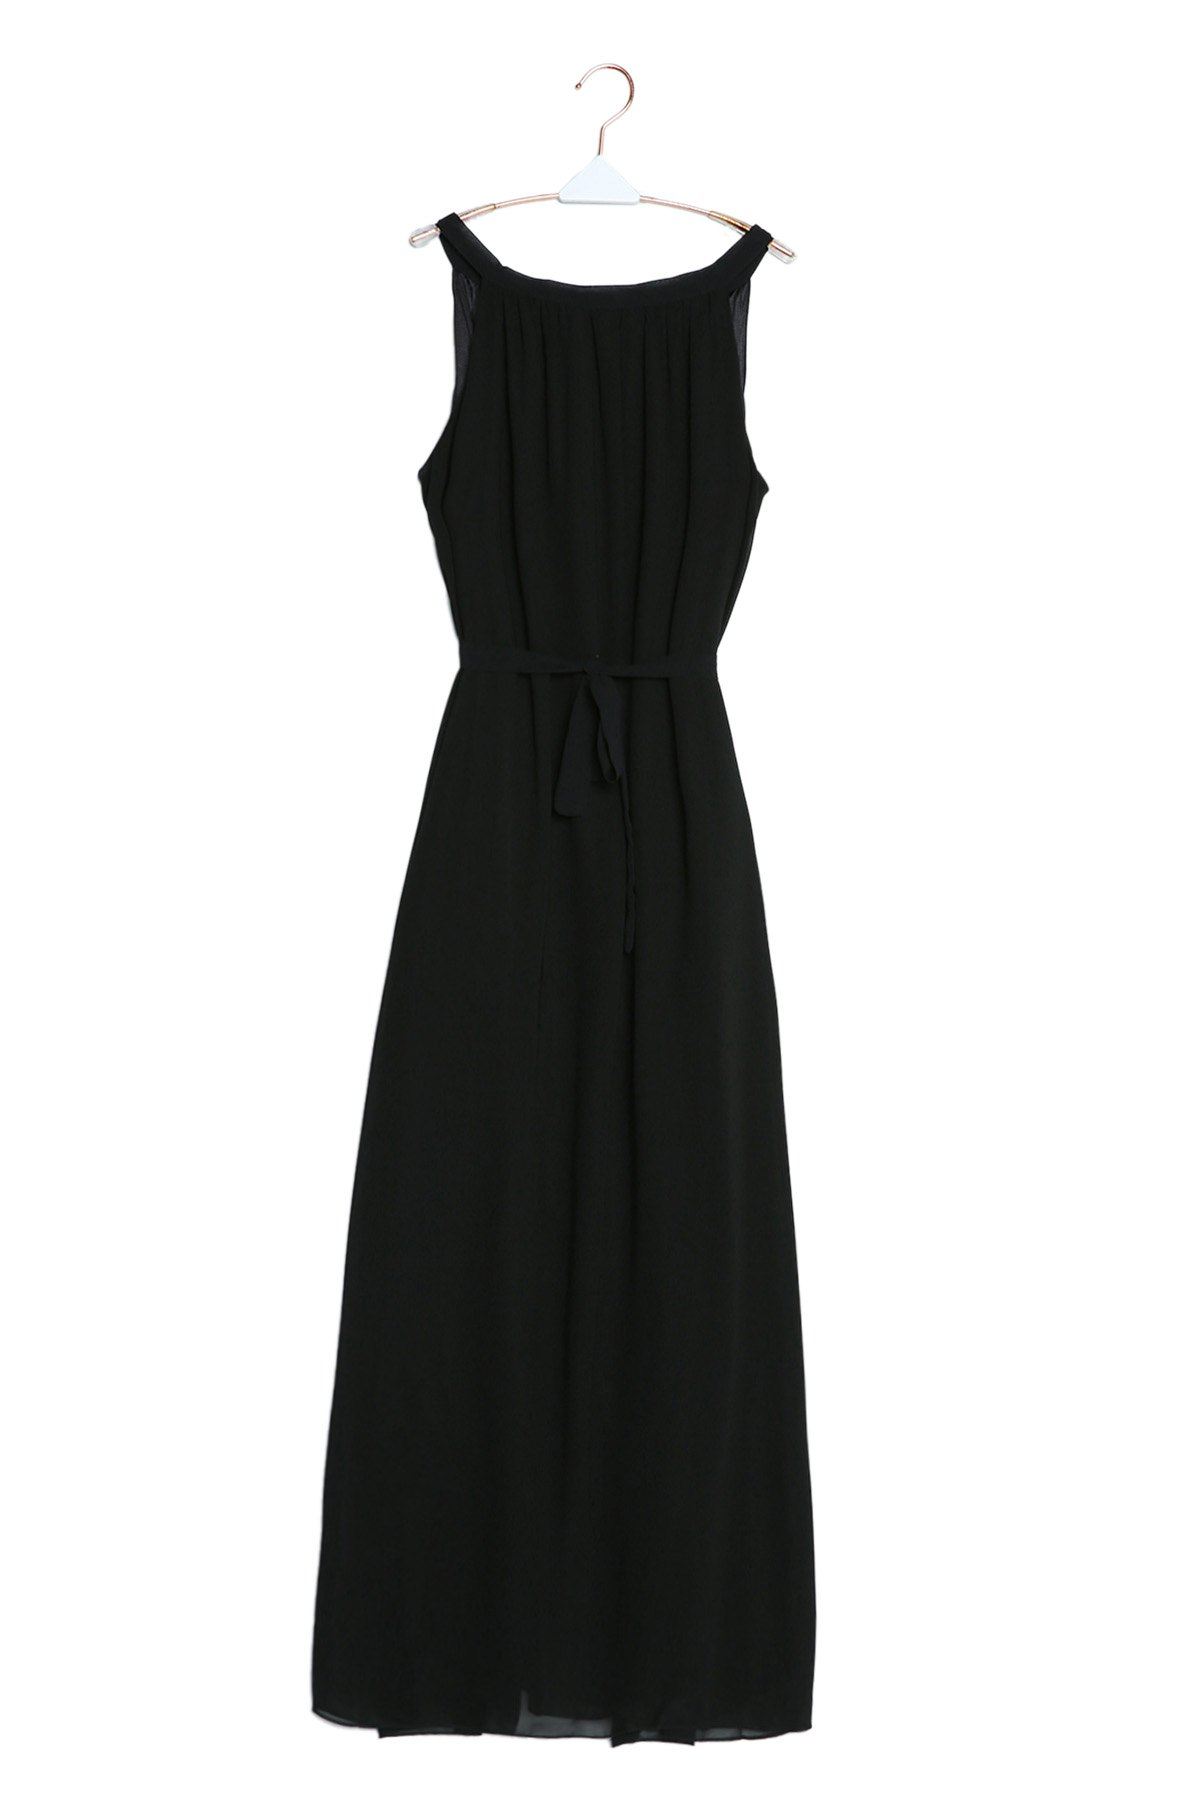 Elegant Spaghetti Strap Sleeveless Solid Color Self Tie Belt Women's Beach Dress - BLACK M